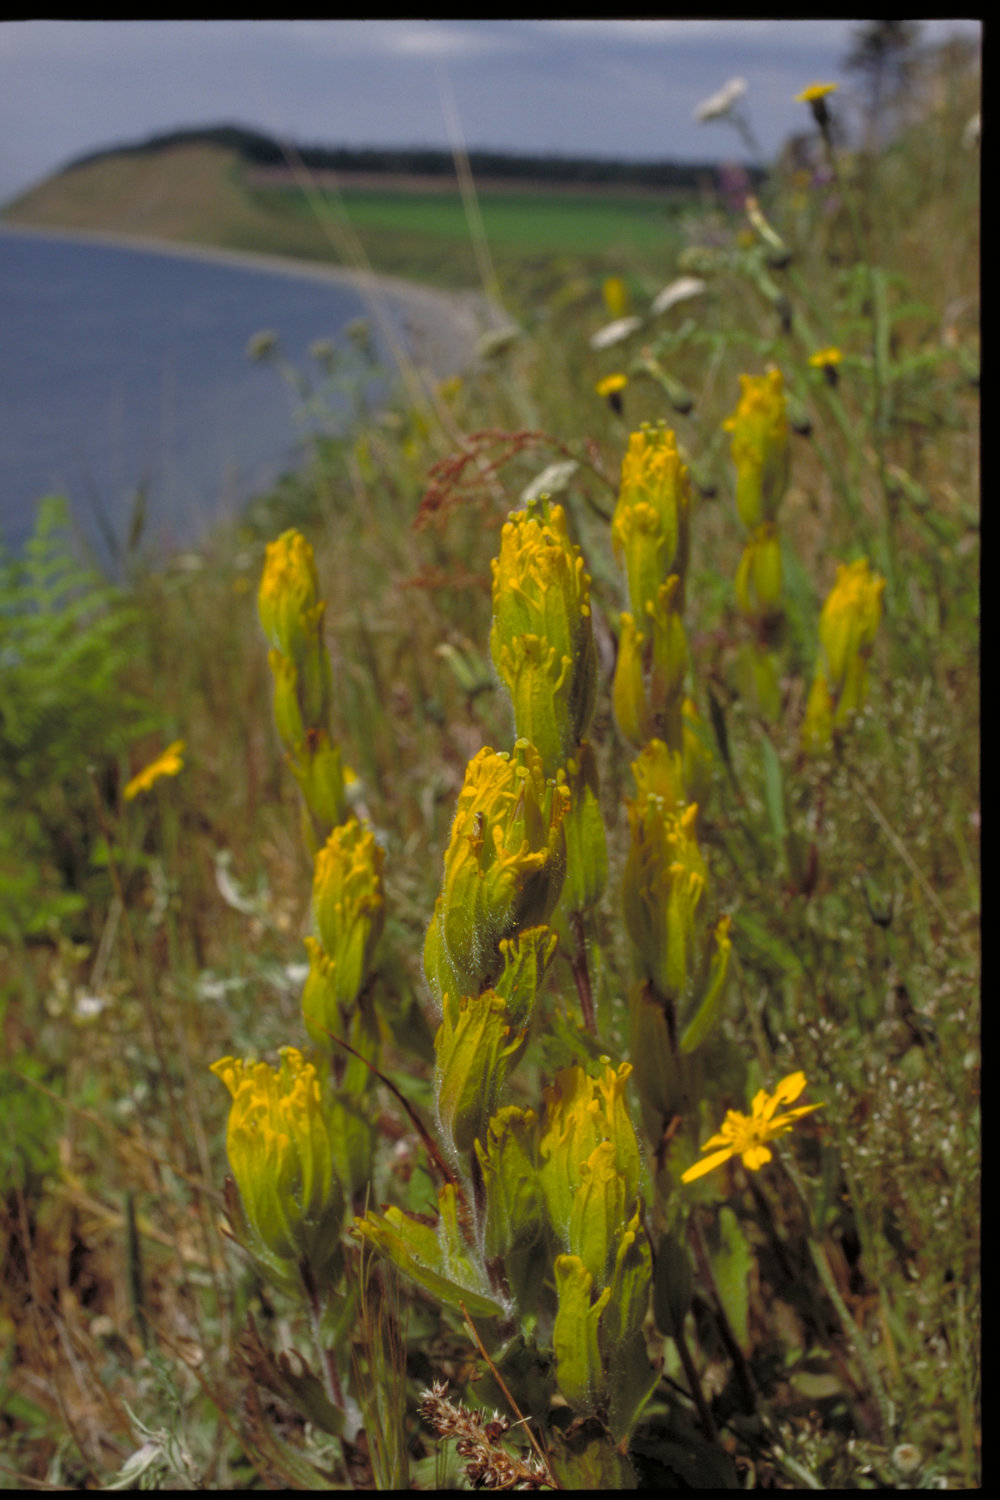 Golden Indian paintbrush at Ebey's Landing. Photo by Peter Dunwiddie/TNC.